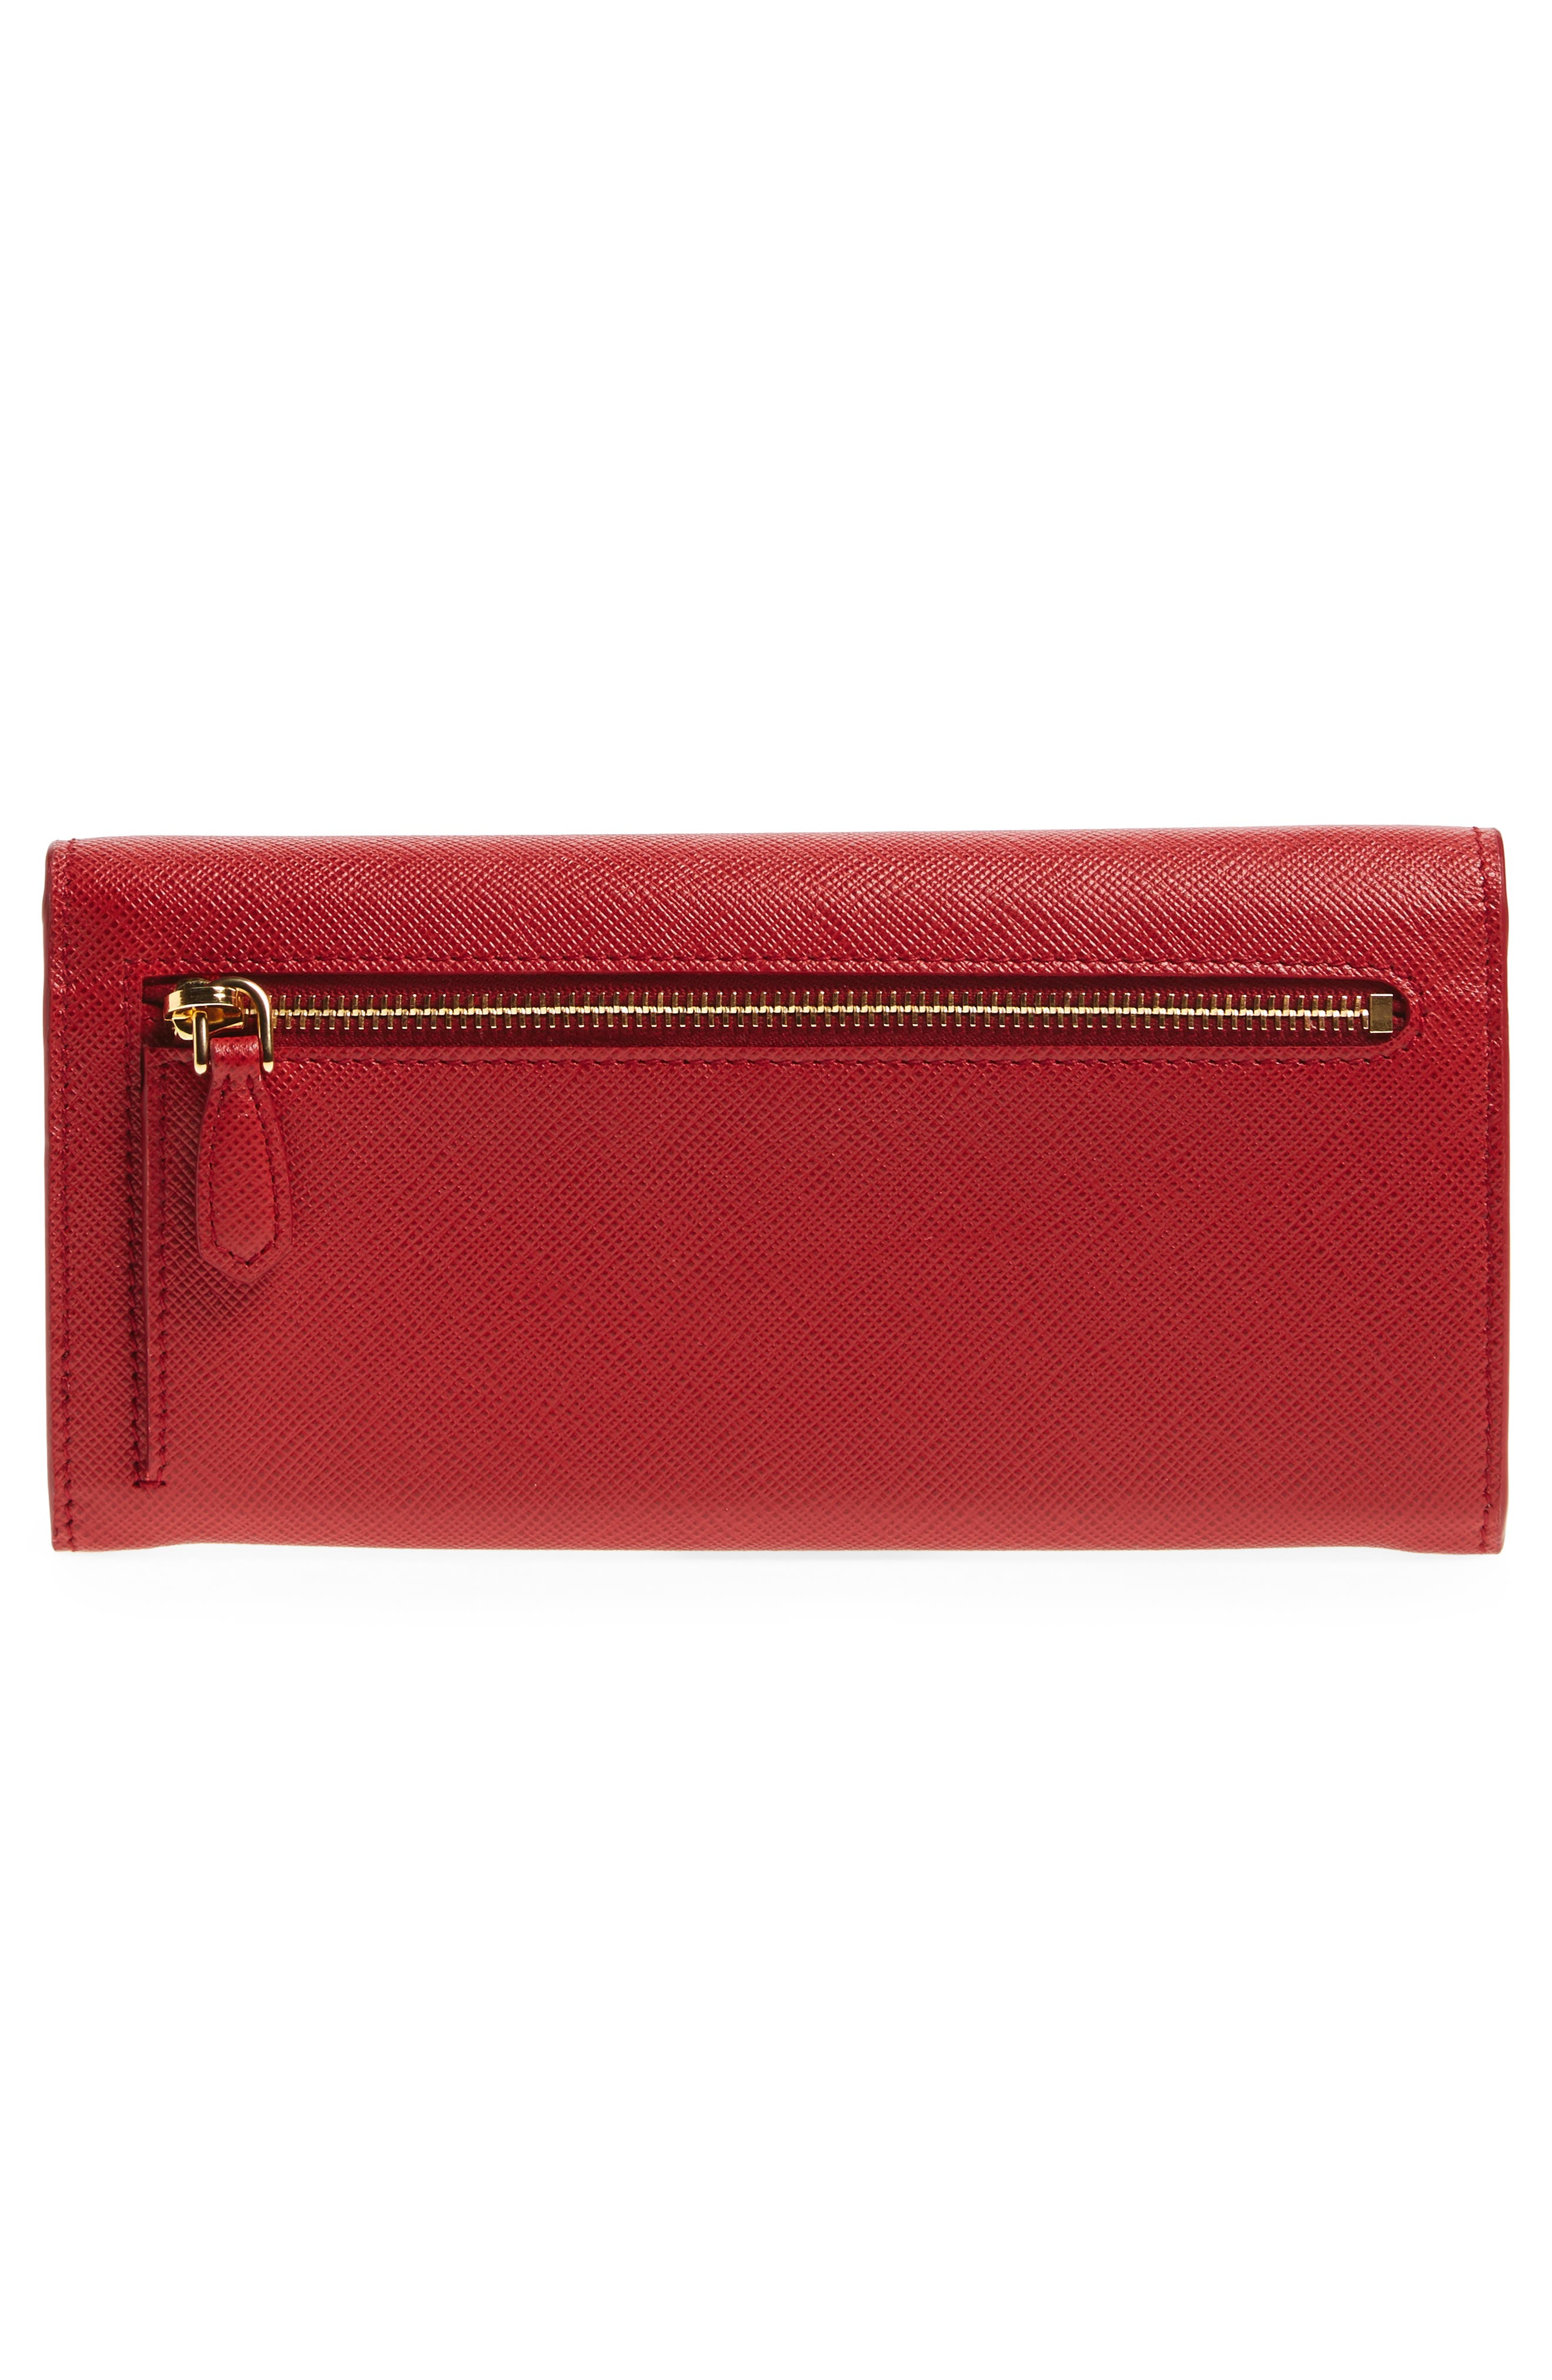 Saffiano Leather Wallet,                             Alternate thumbnail 3, color,                             Fuoco